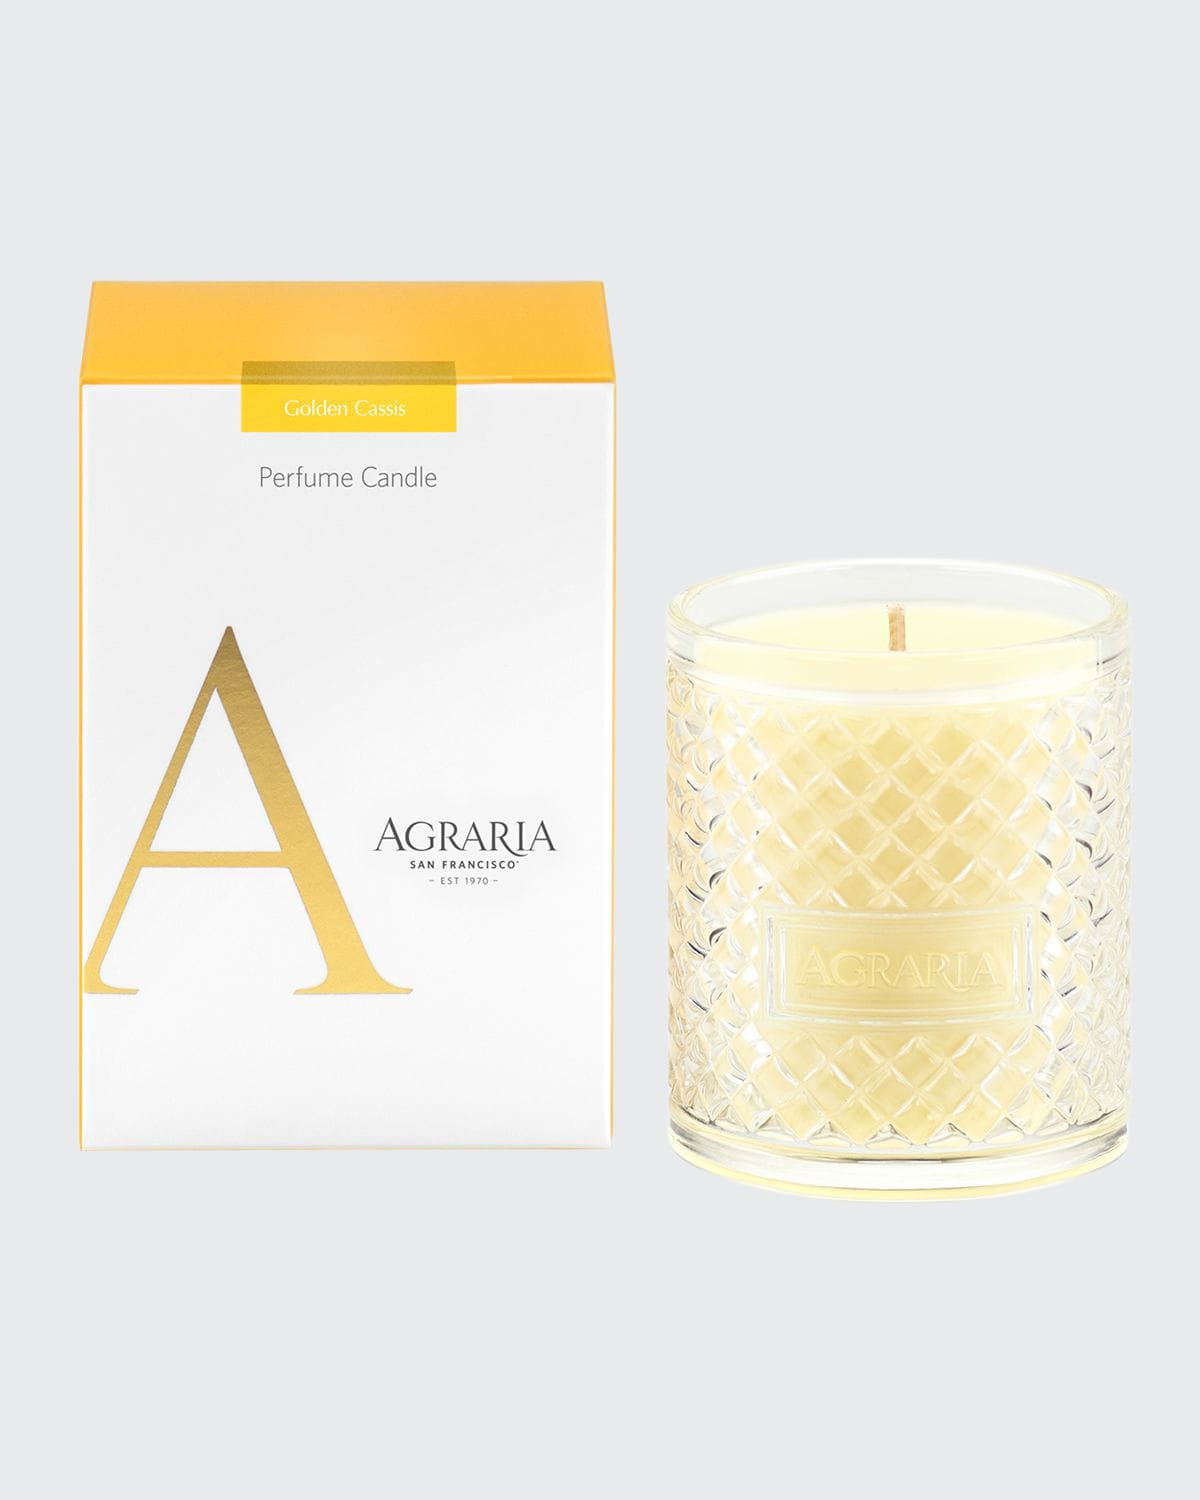 7 oz. Golden Cassis Perfume Candle